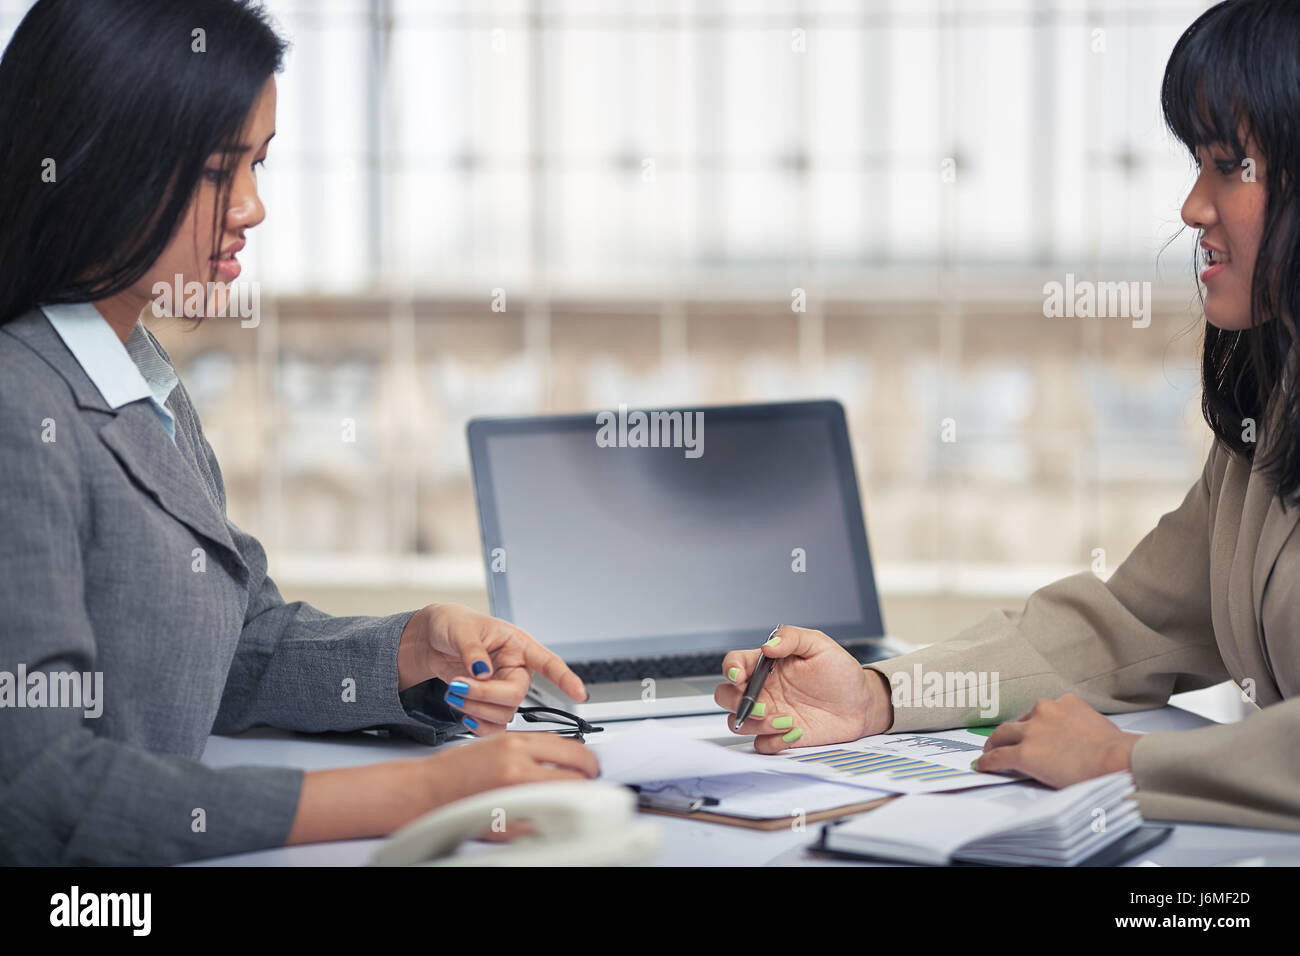 side view of friendly businesswomen discussing and consulting document - Stock Image